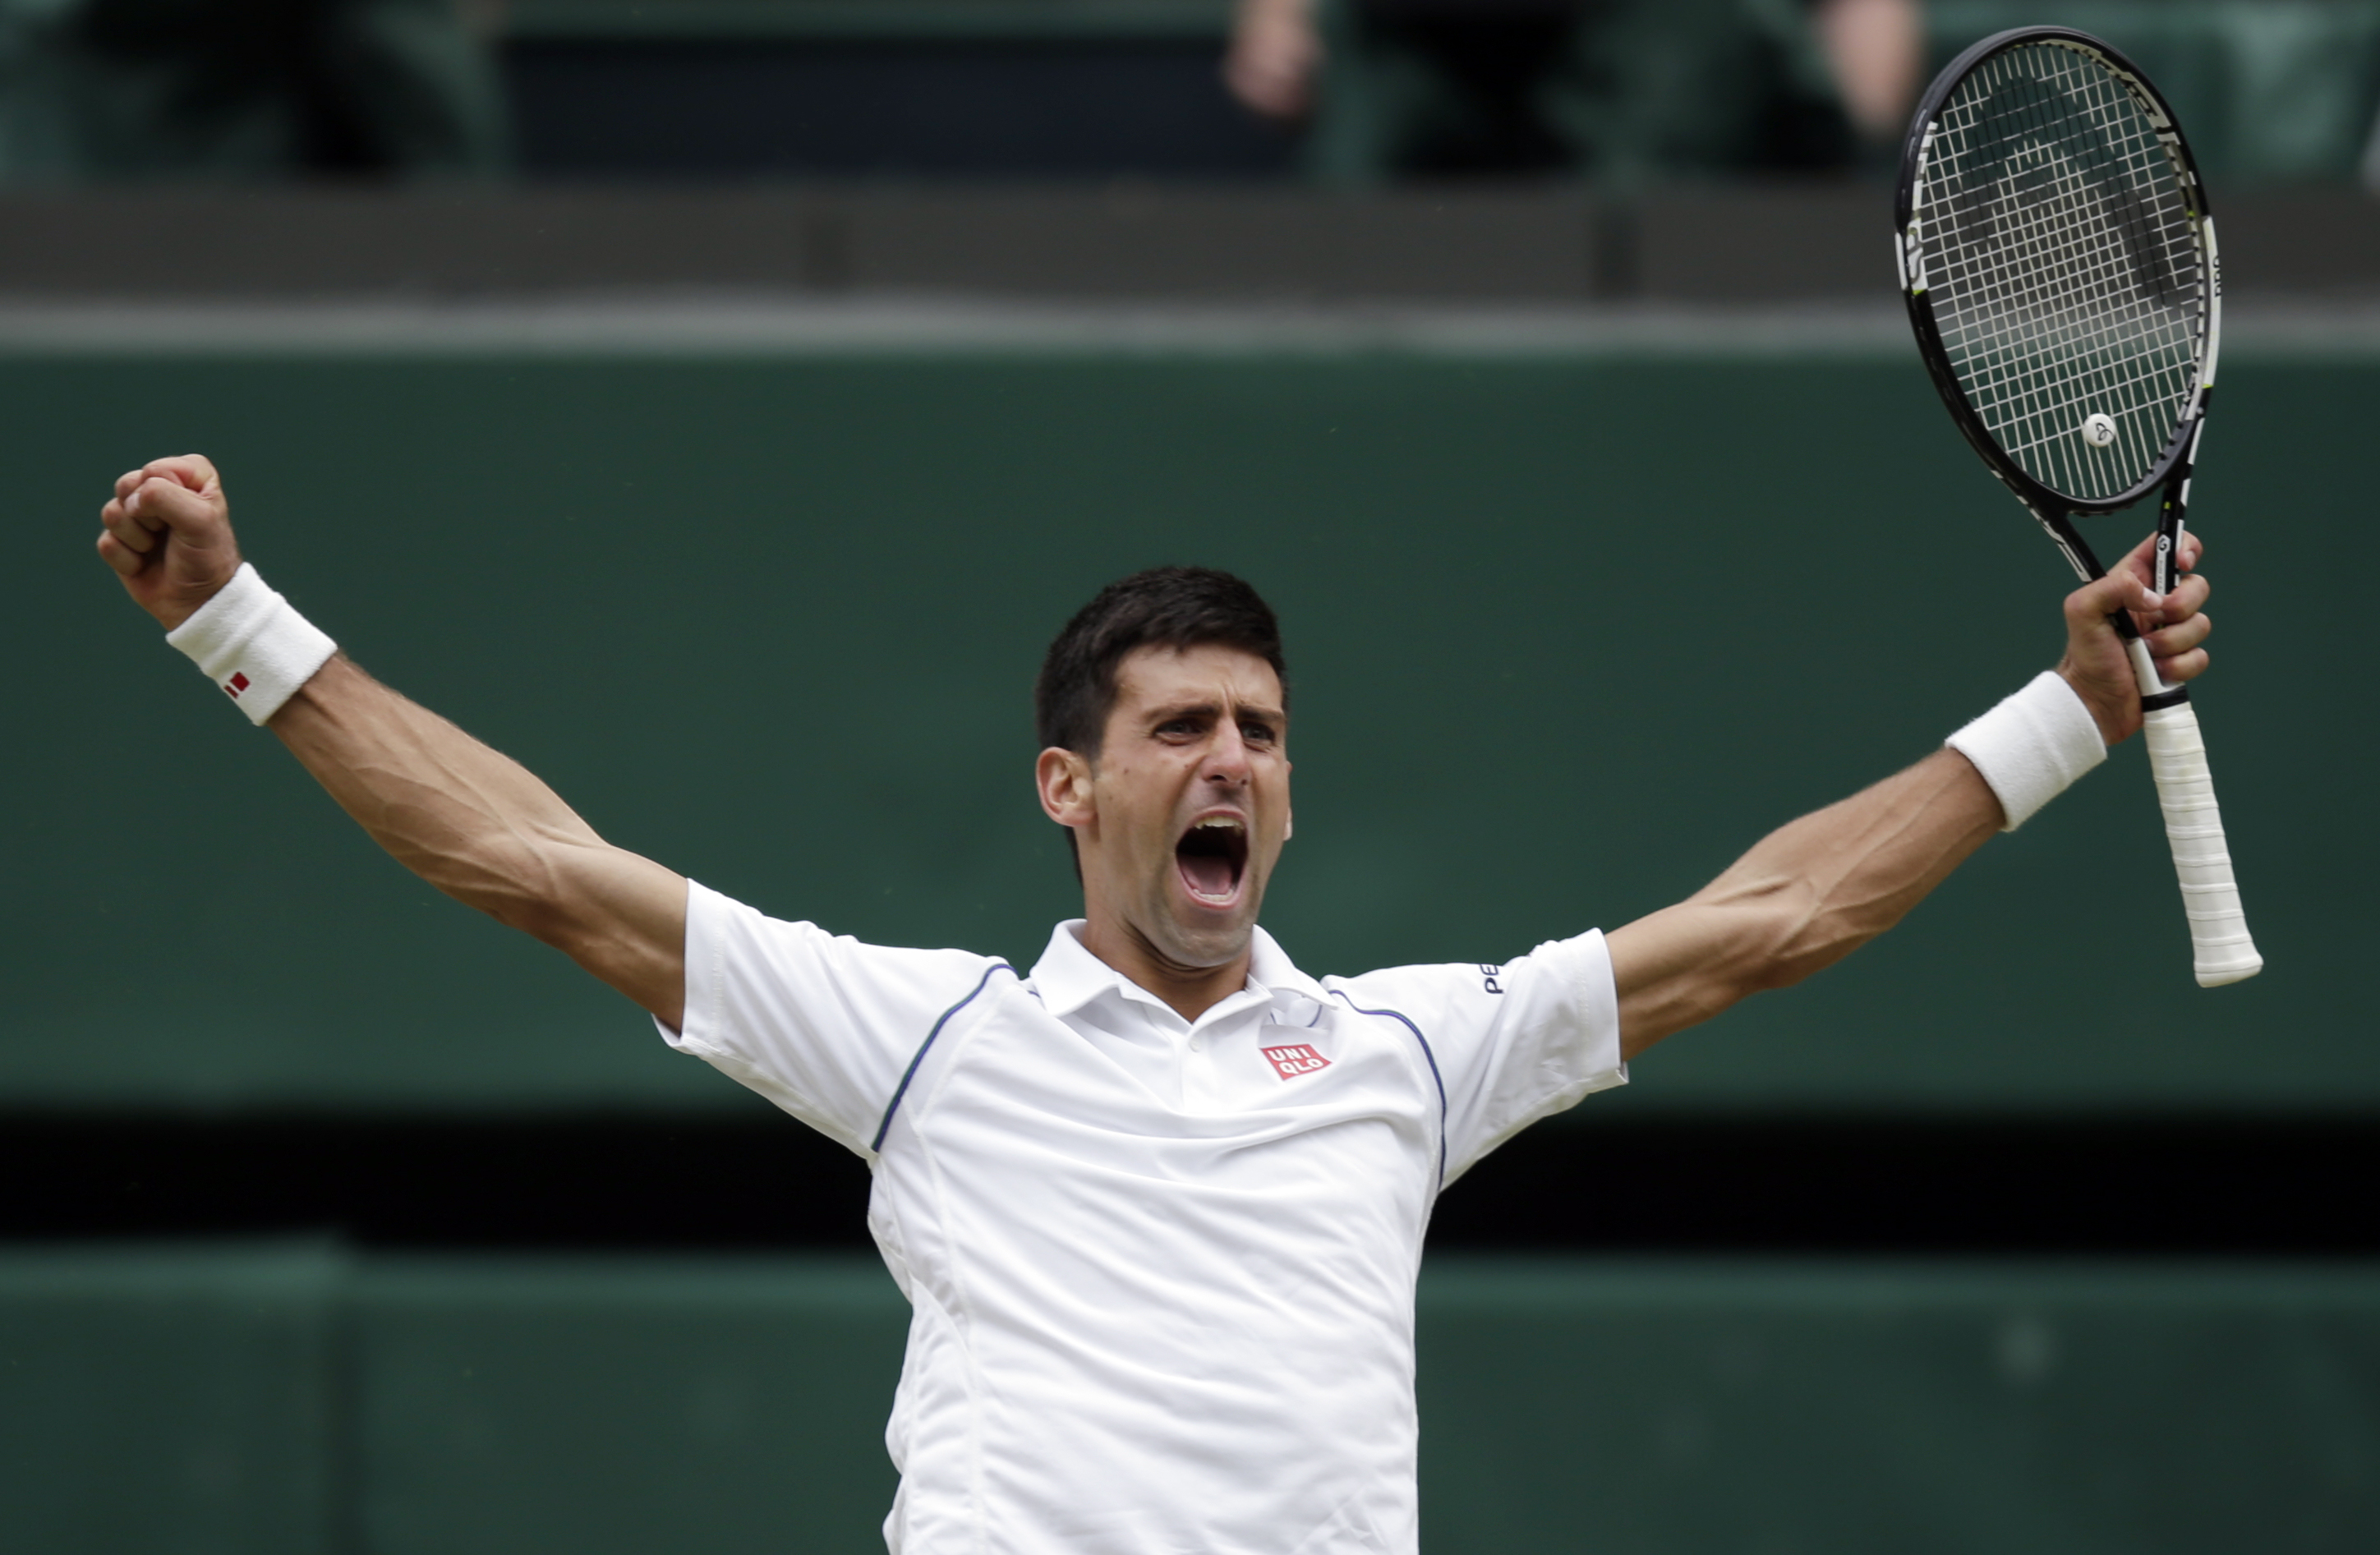 FILE - In this Sunday, July 12, 2015 file photo, Novak Djokovic of Serbia celebrates winning the men's singles final against Roger Federer of Switzerland at the All England Lawn Tennis Championships in Wimbledon, London.  Prize money at Wimbledon is incre